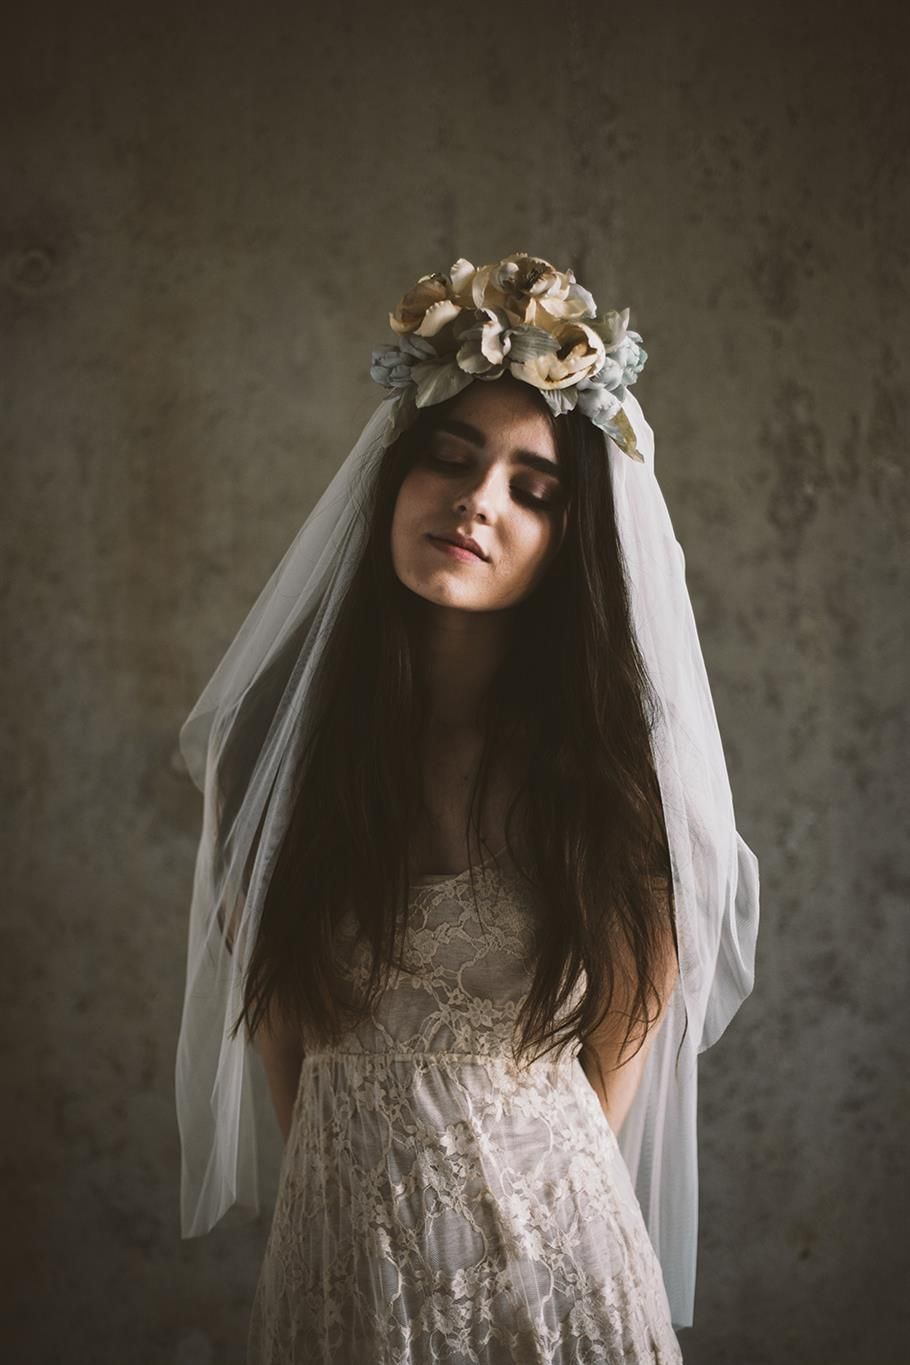 Romantic wedding hair accessories for the 2015 bride headpieces romantic veils and bridal headpieces for the modern vintage loving bride from mignonne handmade dhlflorist Images